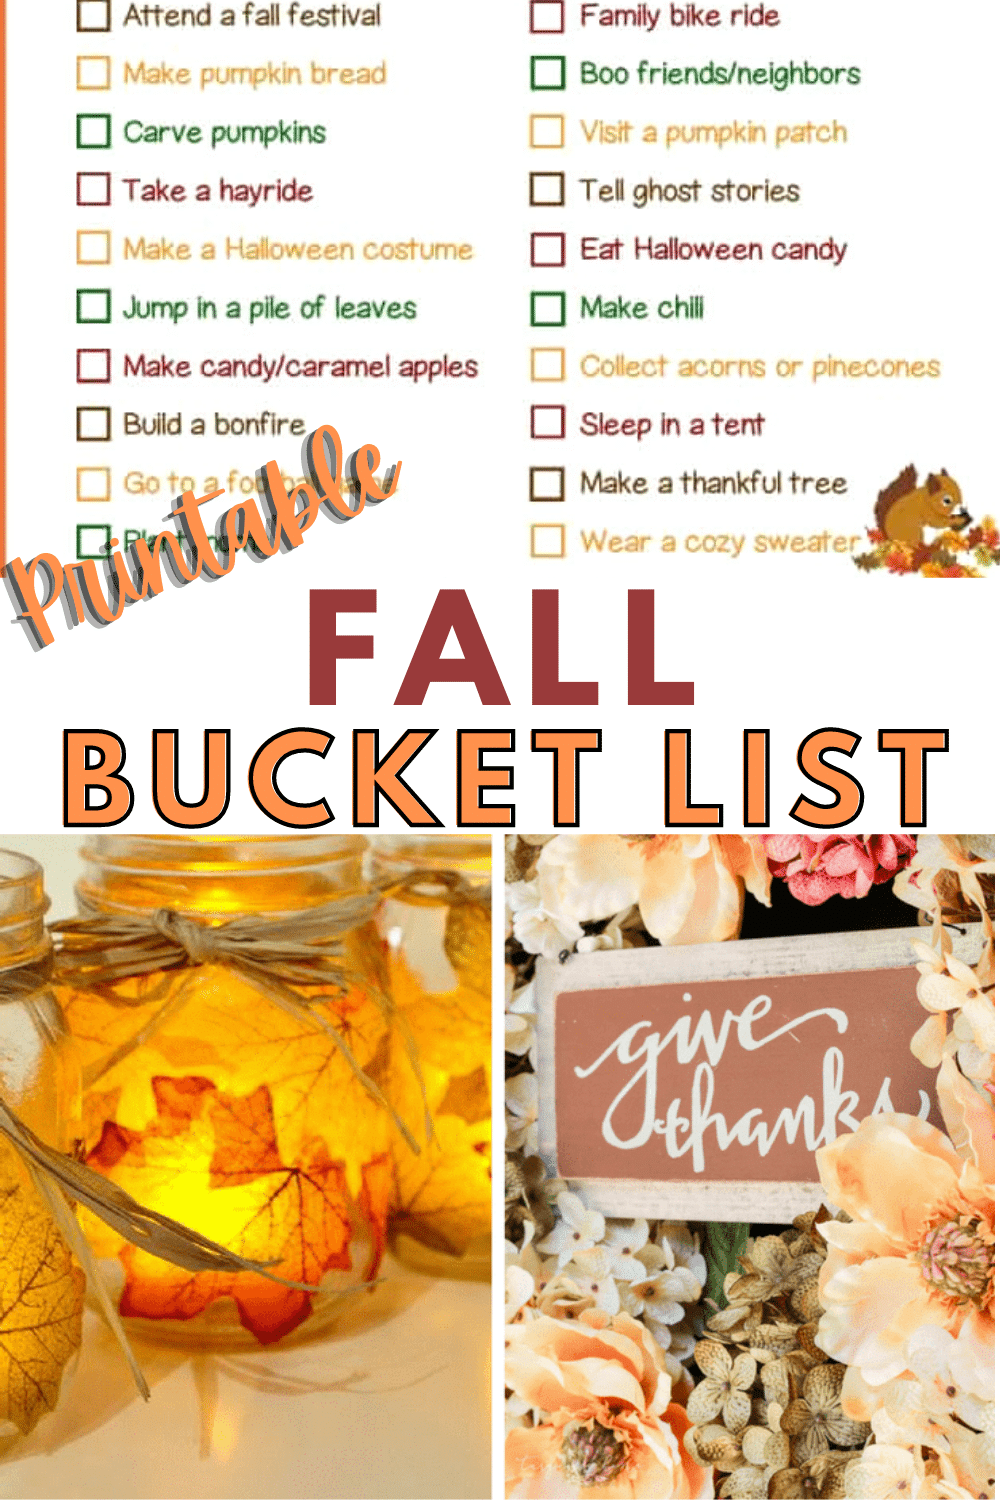 This fall bucket list includes all of the fun activities that make fall a wonderful season. It's the perfect way to get out and enjoy the season as a family. #printable #fall #fallactivities #bucketlist via @wondermomwannab